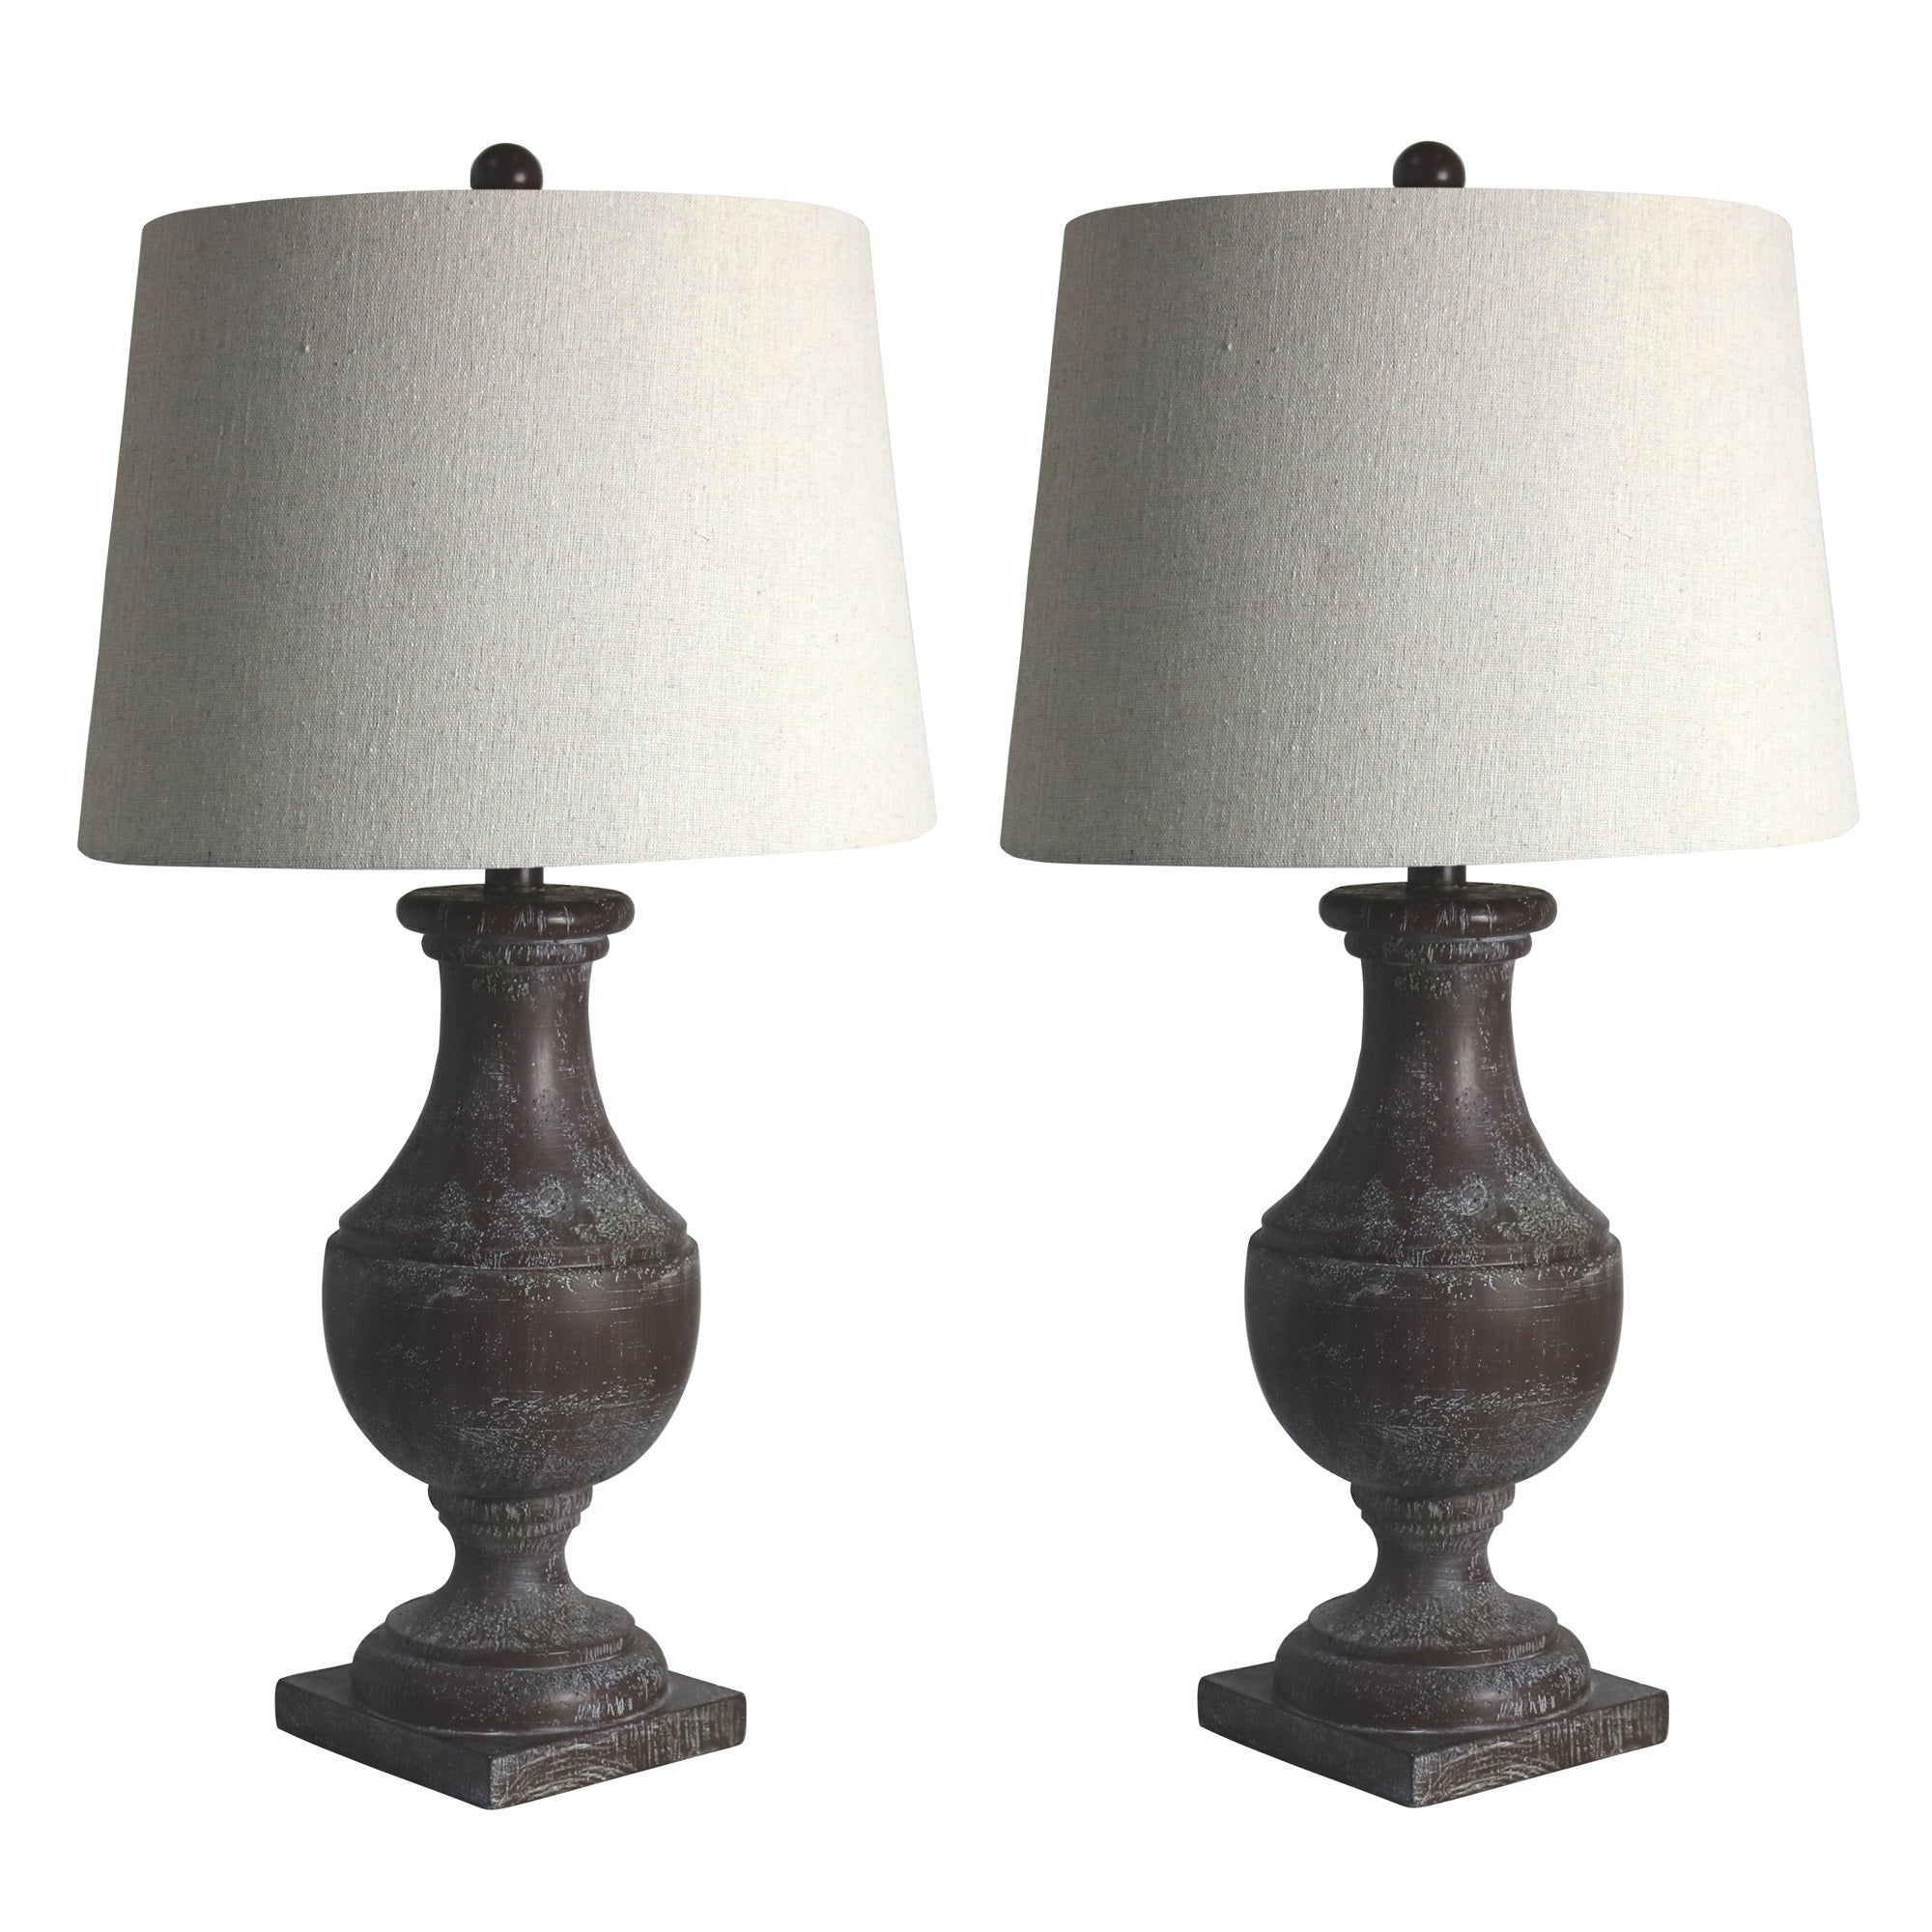 Best Best Table Lamps Luxury Guide Gallery @house2homegoods.net